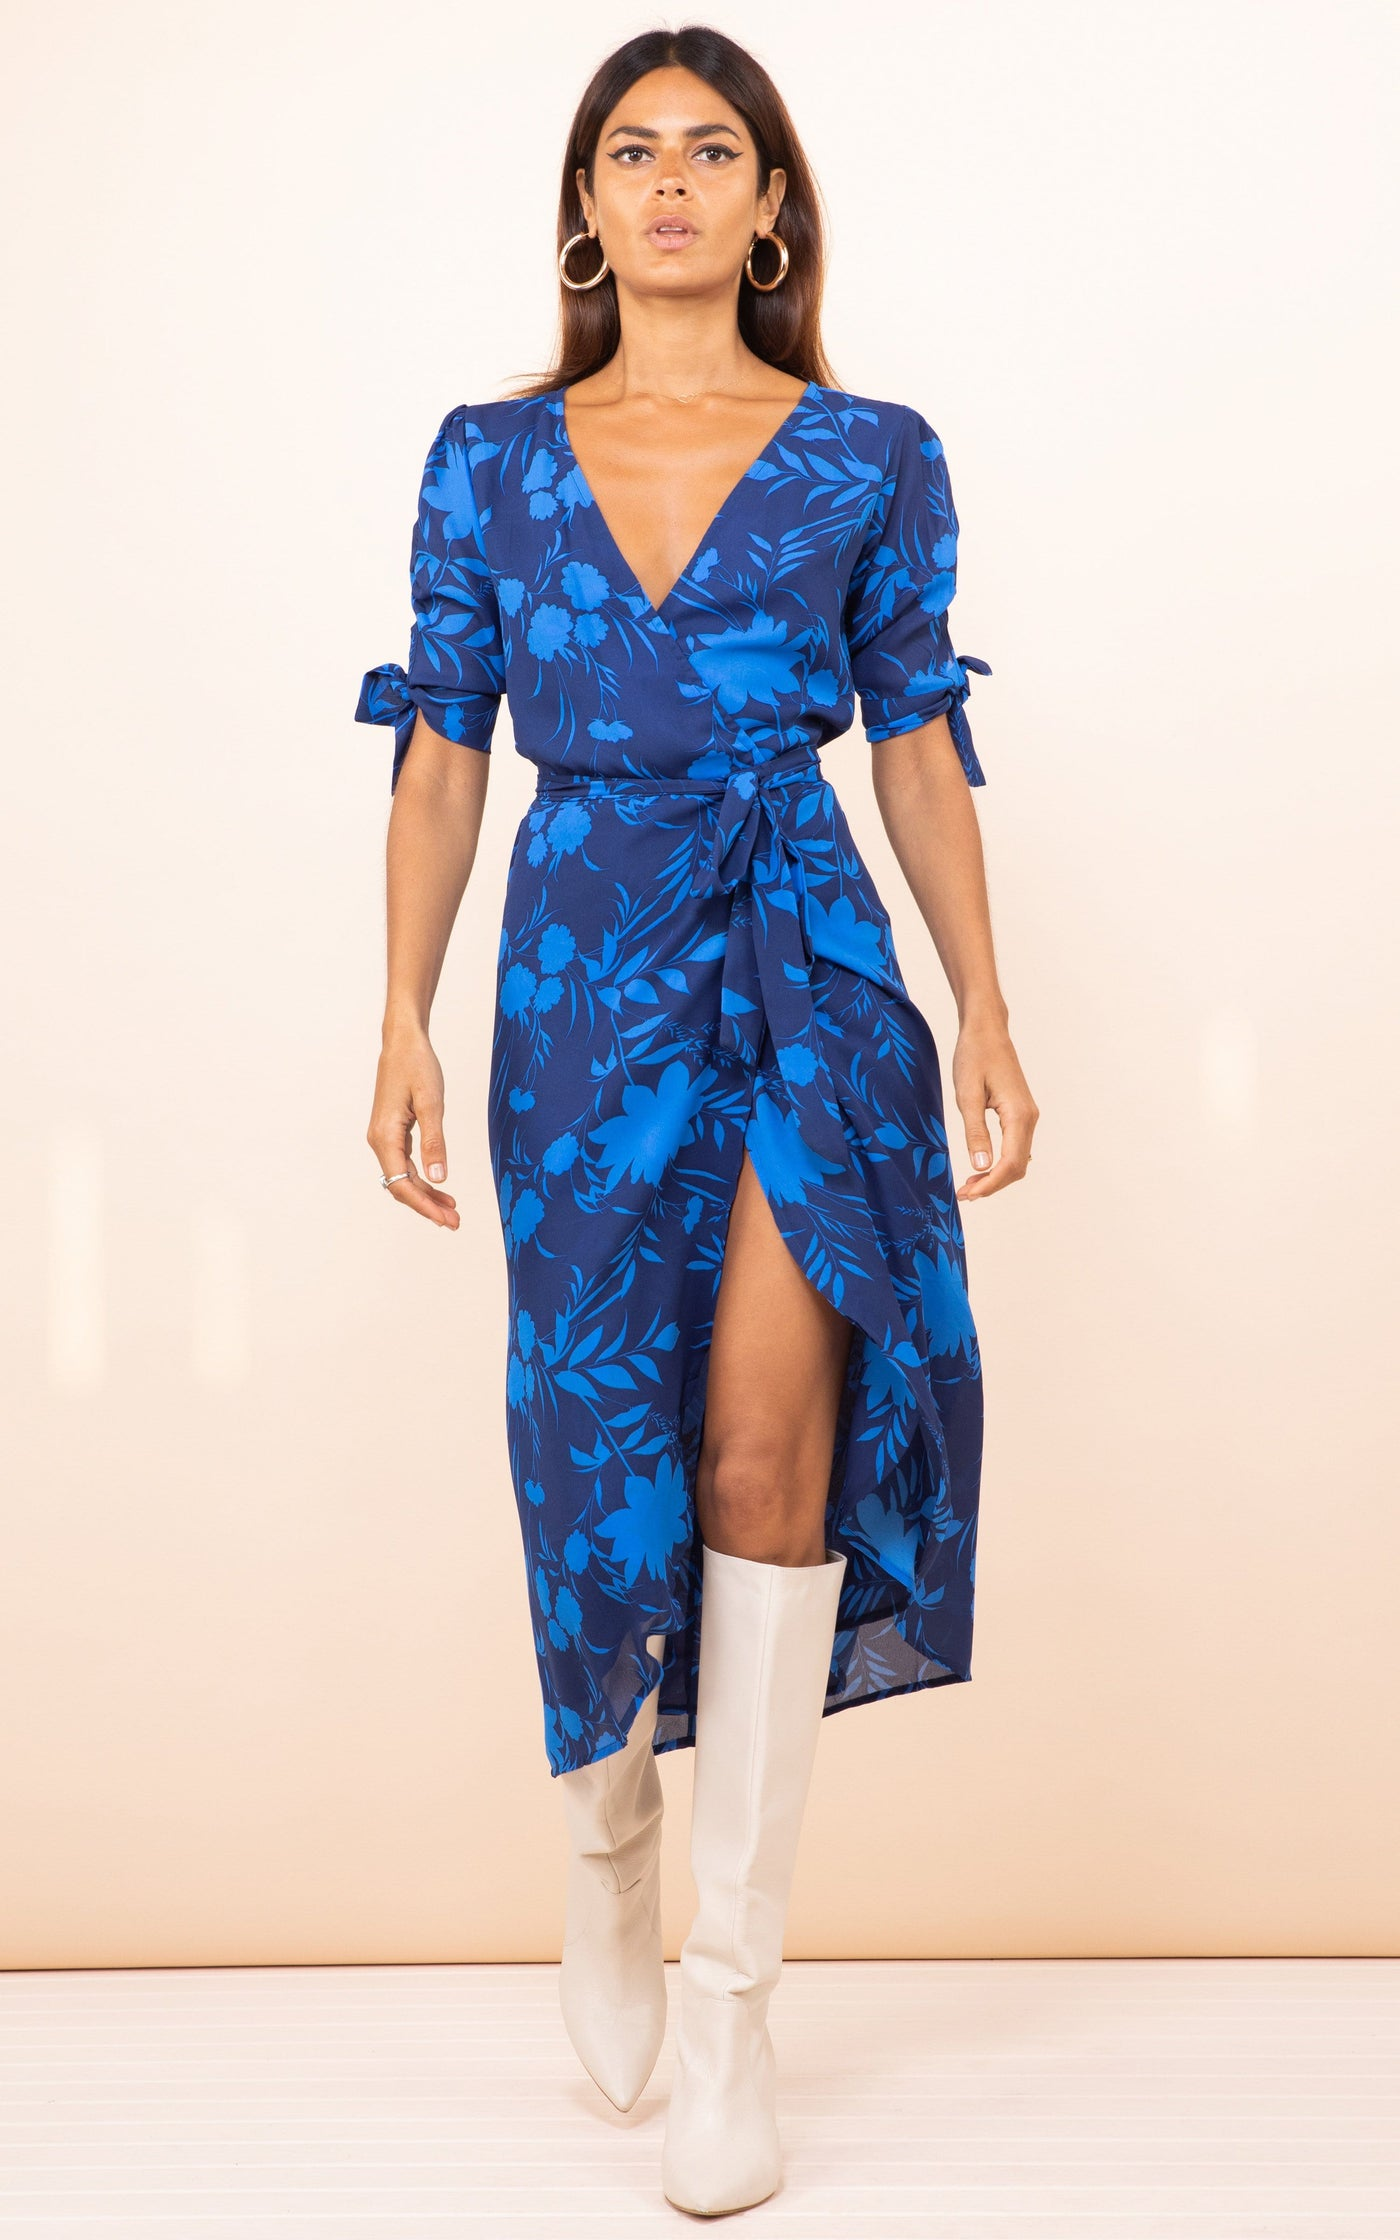 Model walks forward wearing Dancing Leopard Olivera Midi Dress in blue floral print with white boots